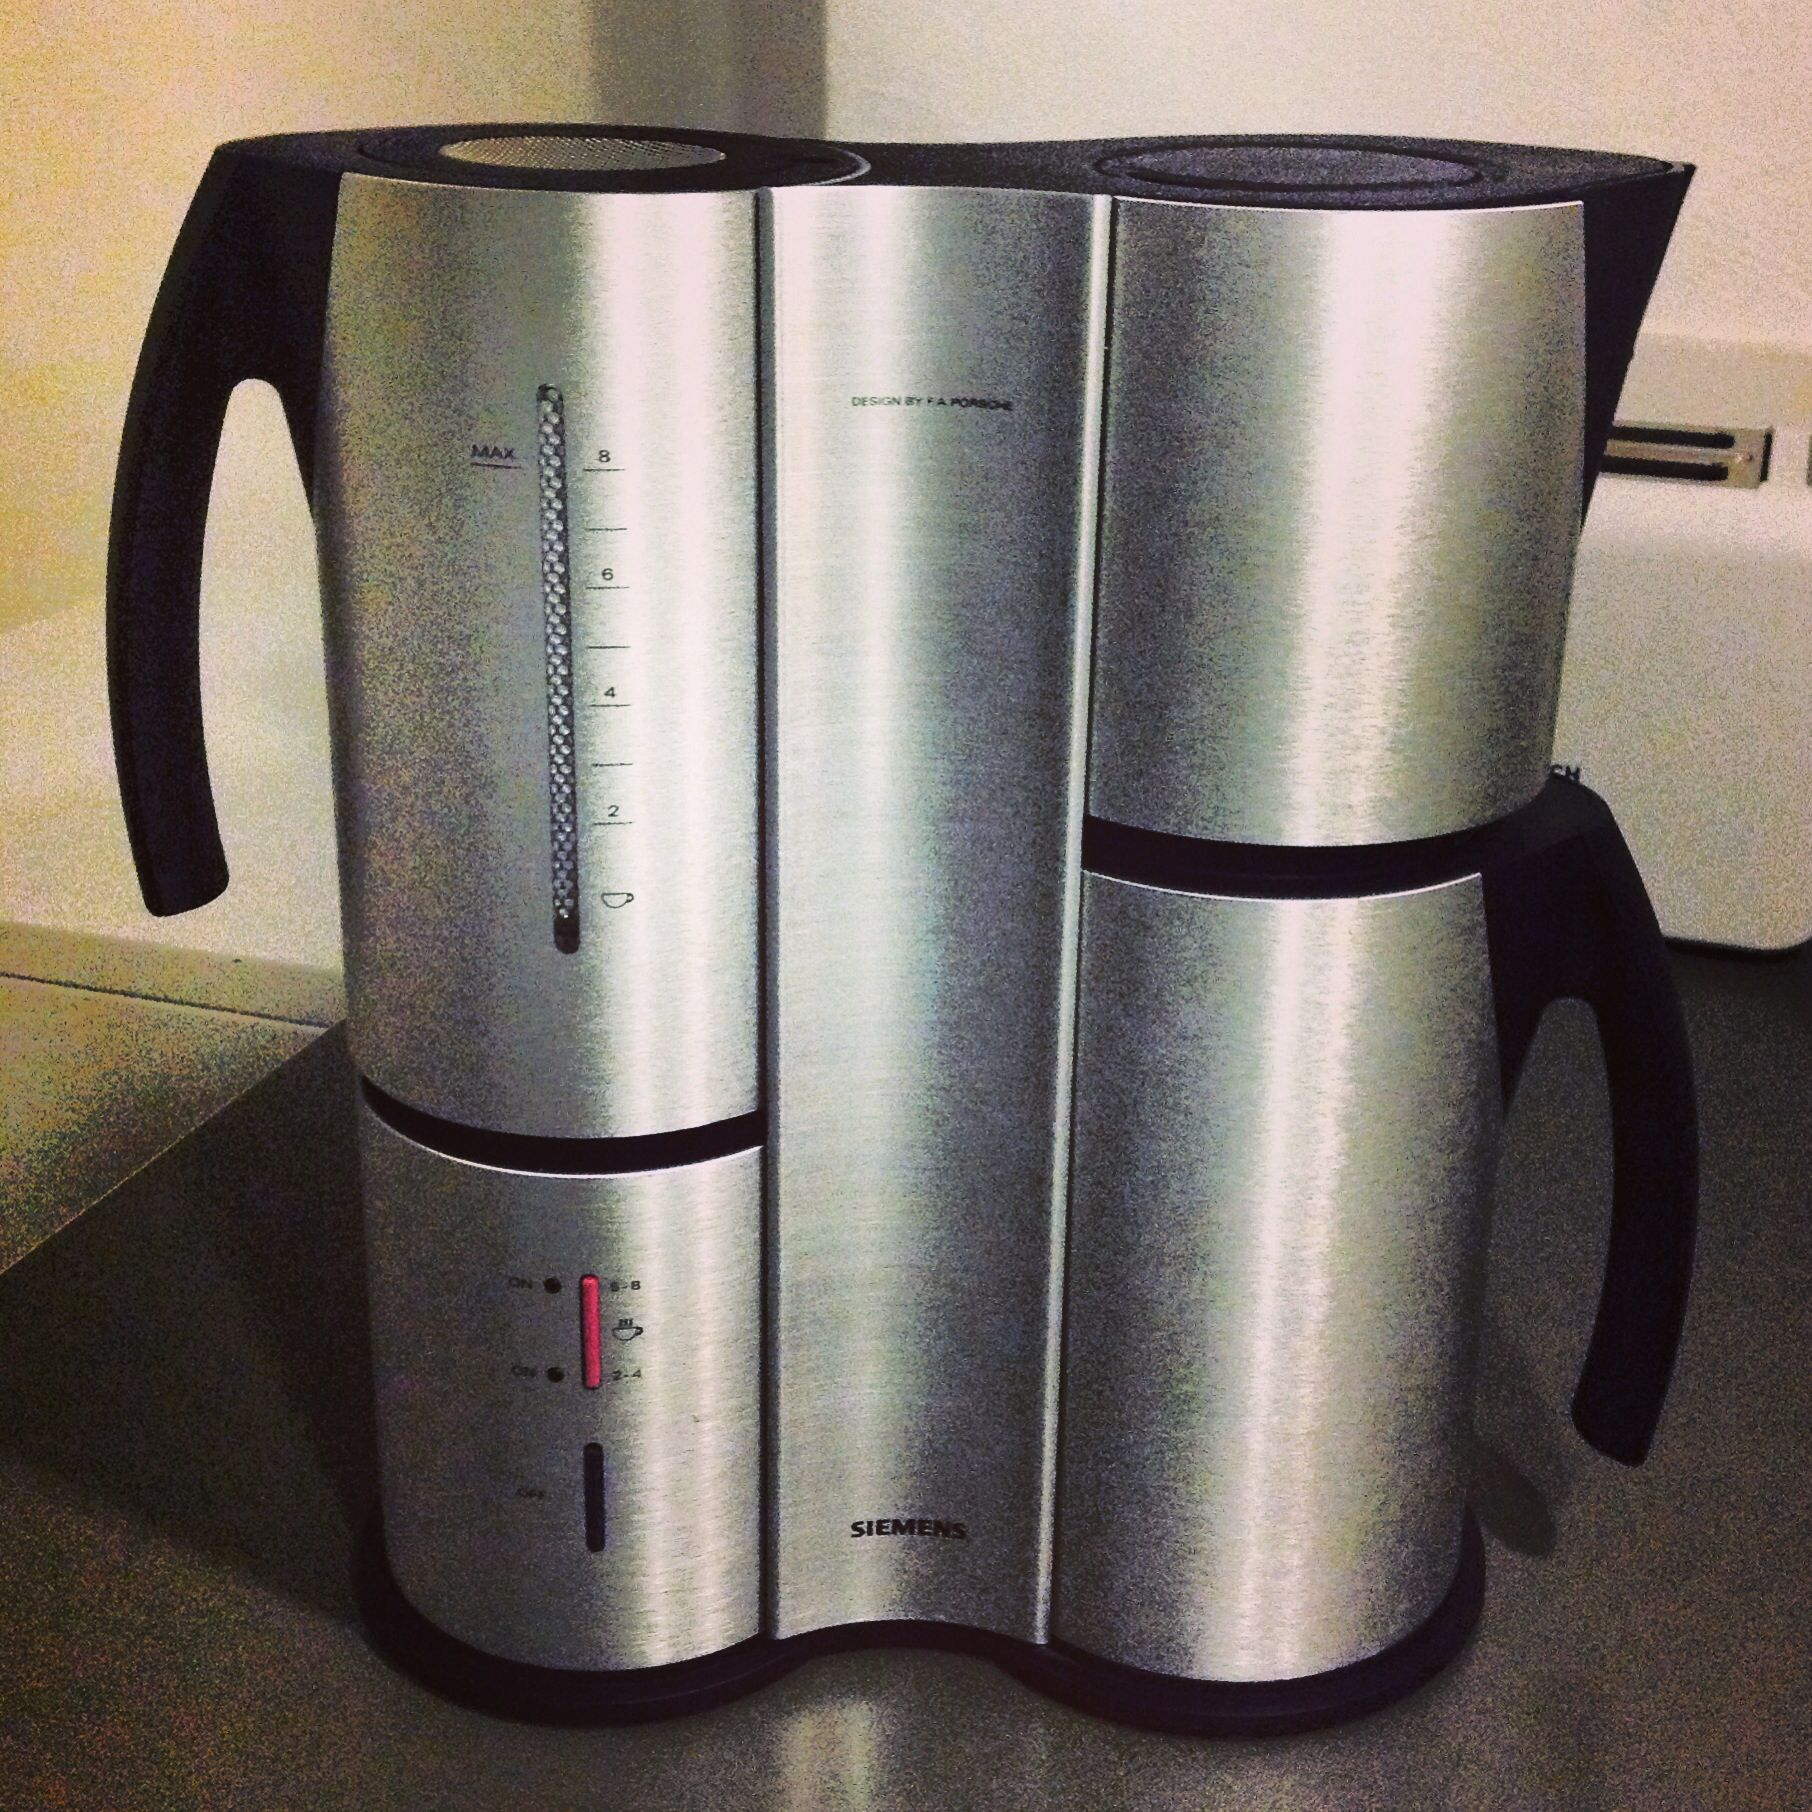 My Newly Acquired Siemens Coffee Machine   Porsche Design. Beautiful Object!